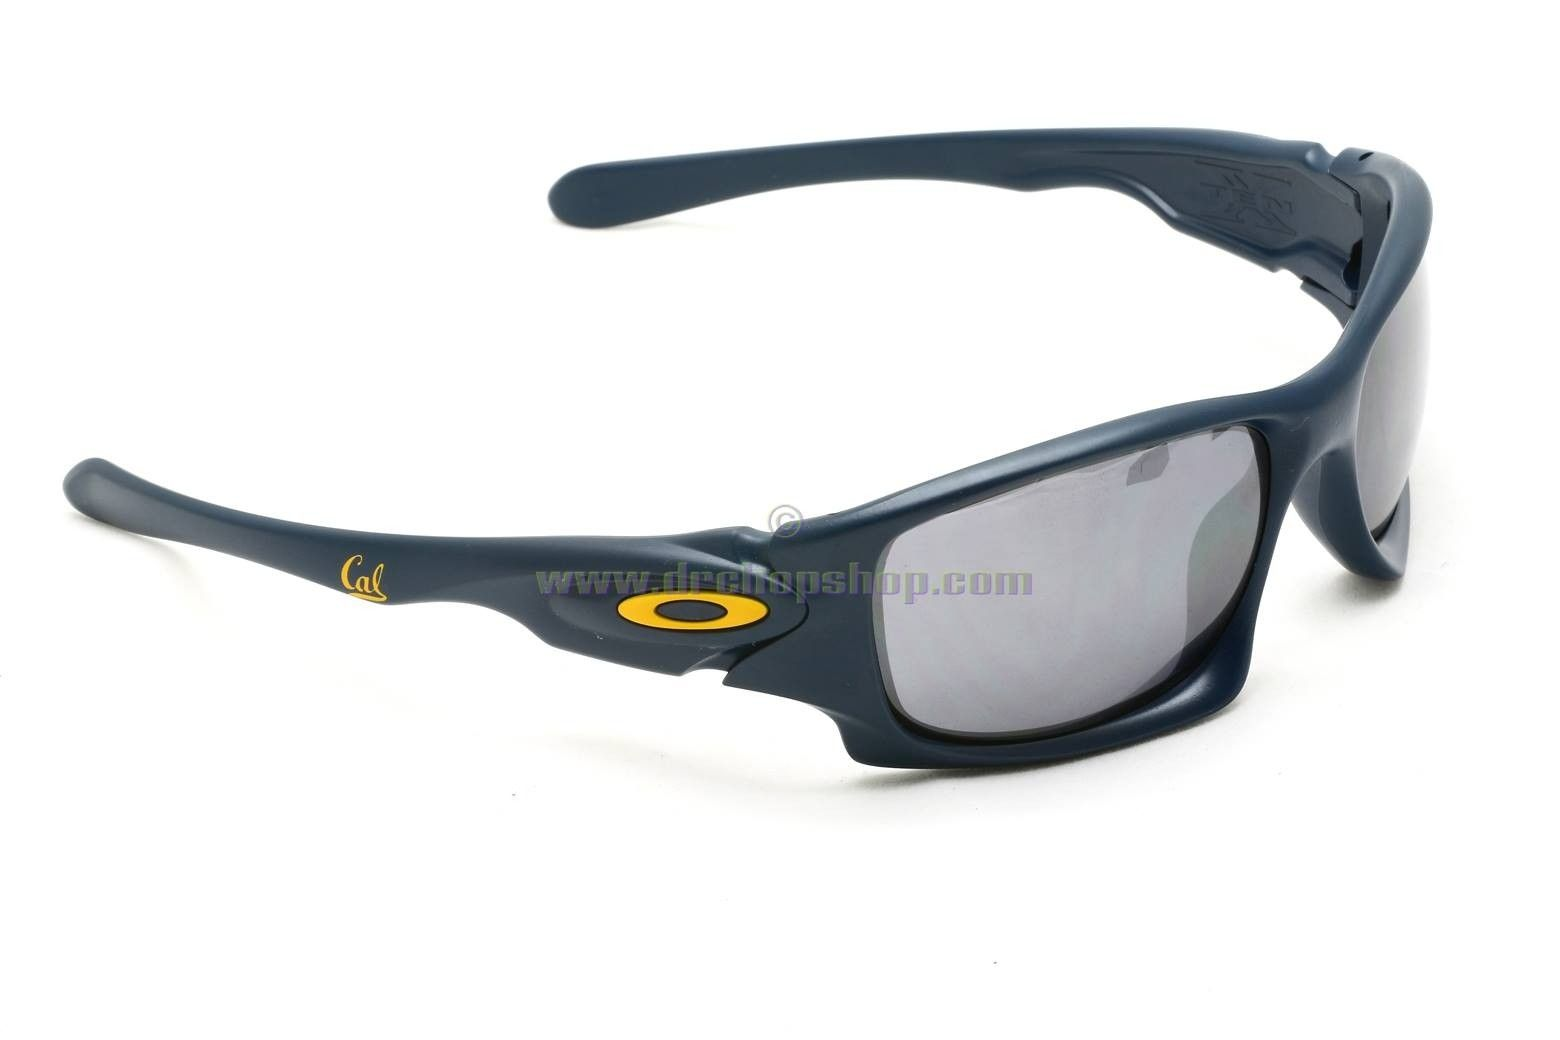 oakley sunglasses stockists near me